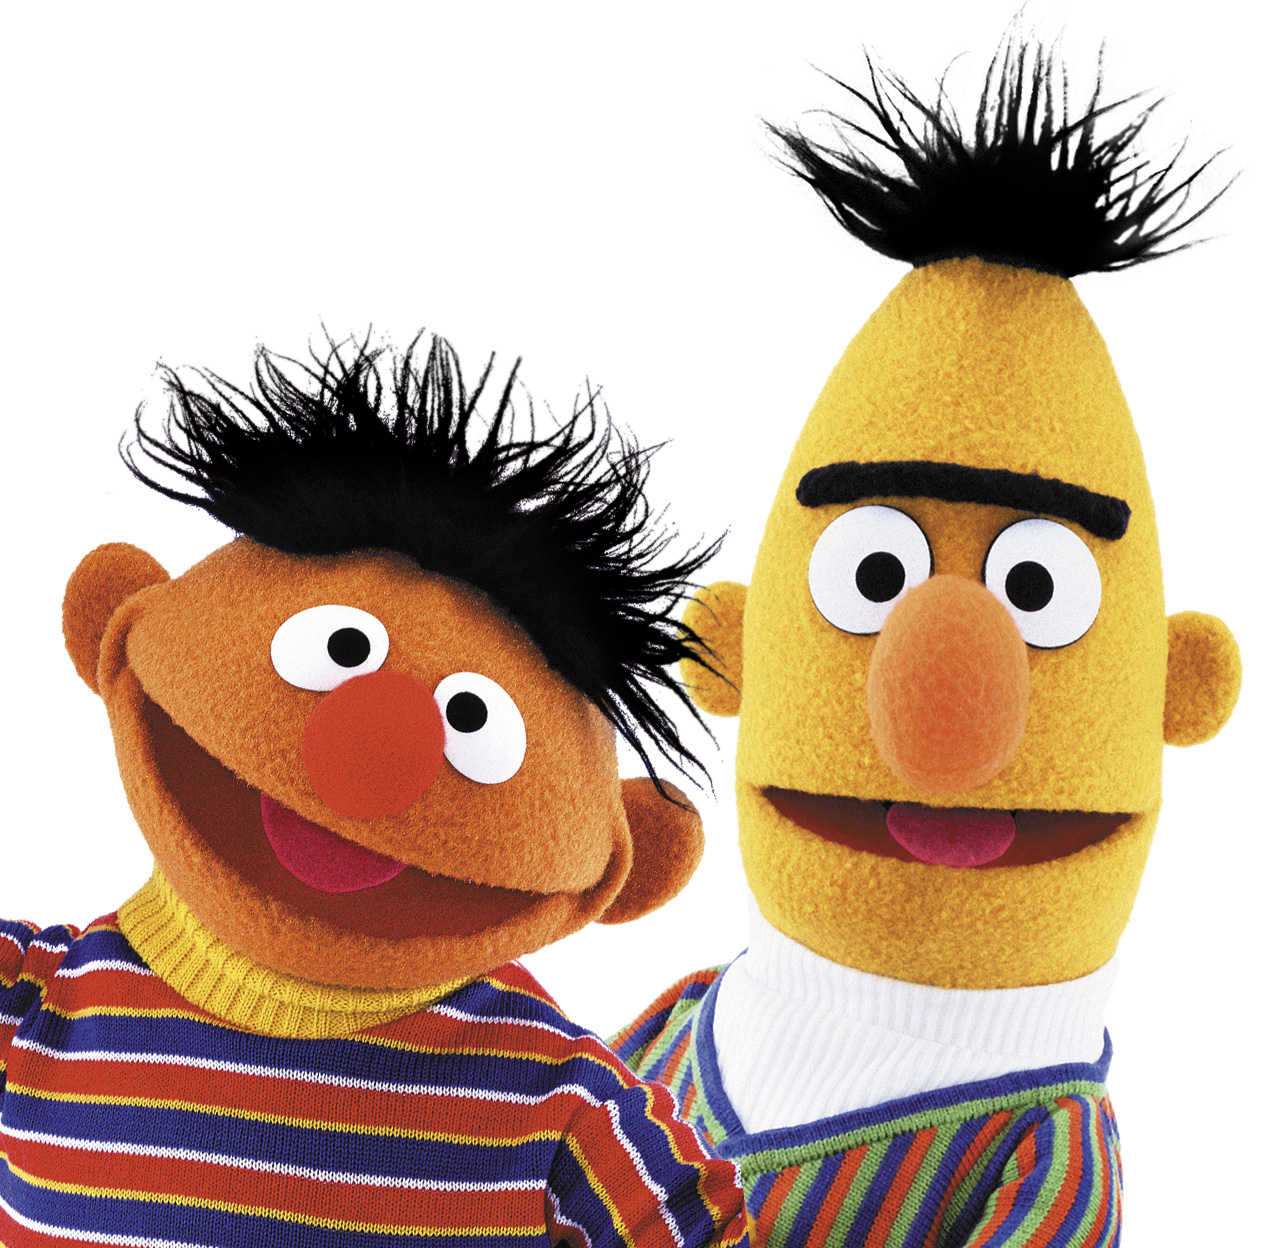 Gordon / Ernie And Bert - Rub Your Tummy / Everybody Wash